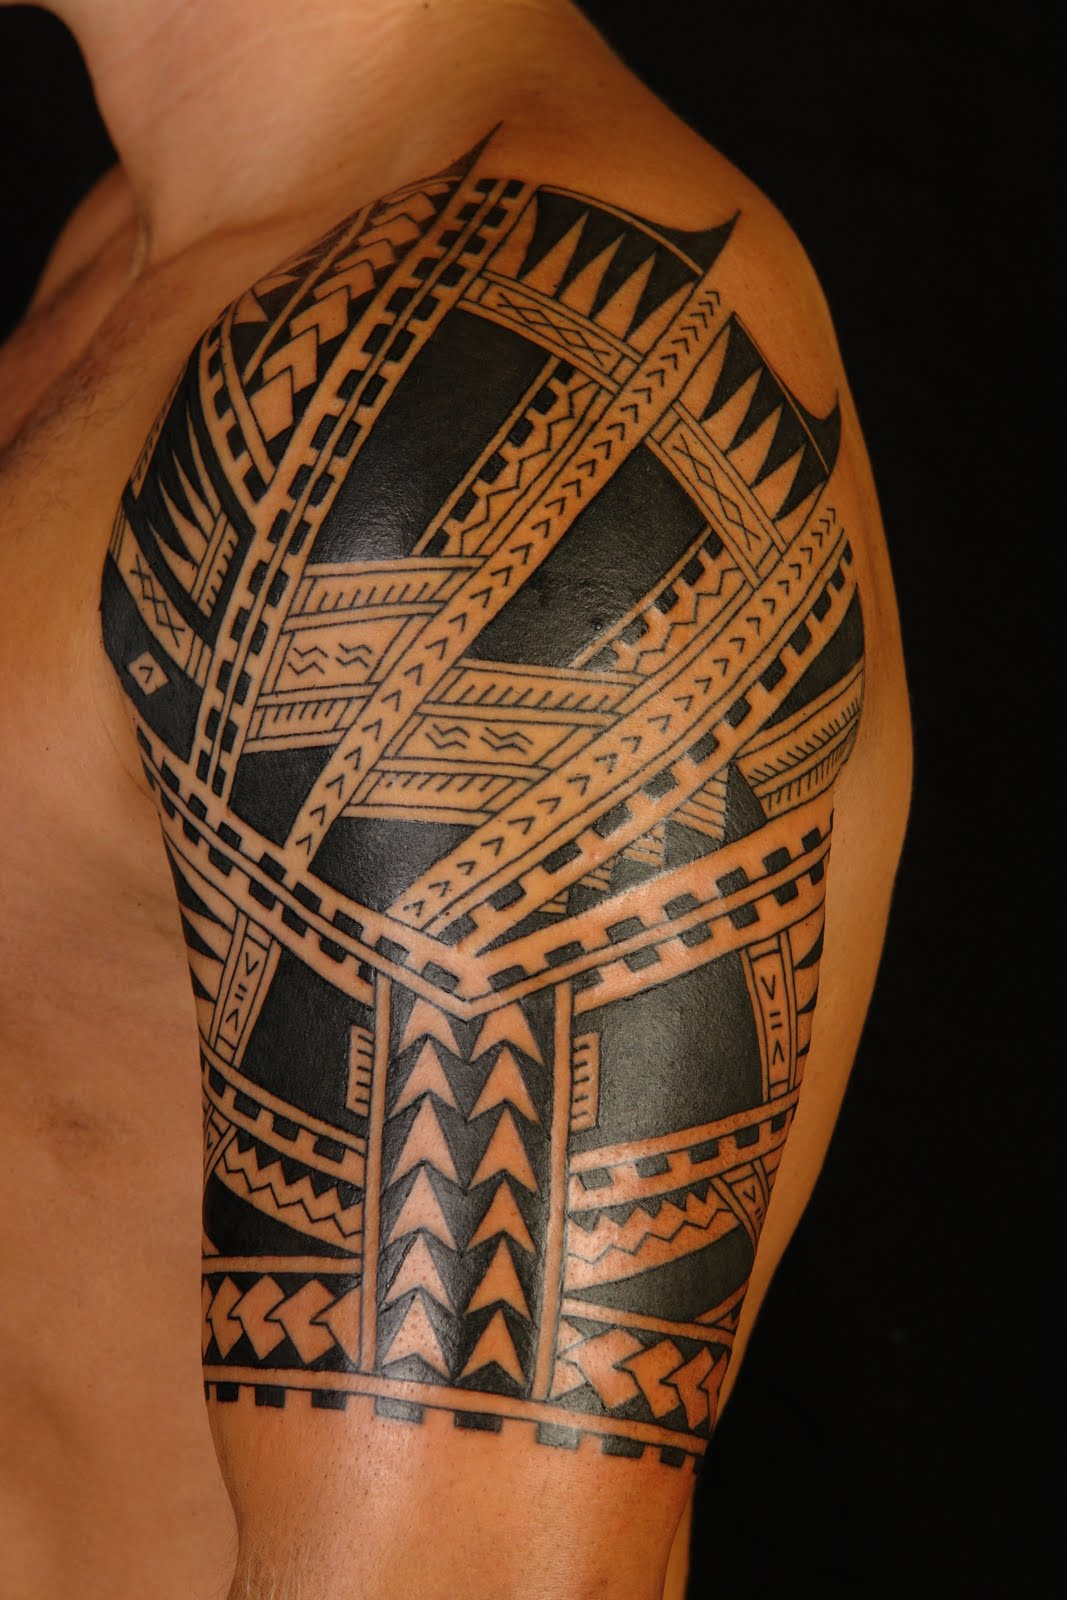 polynesian tribal tattoo armband Tattoos Polynesian and You For Designs, Meaning   Ideas Tattoos